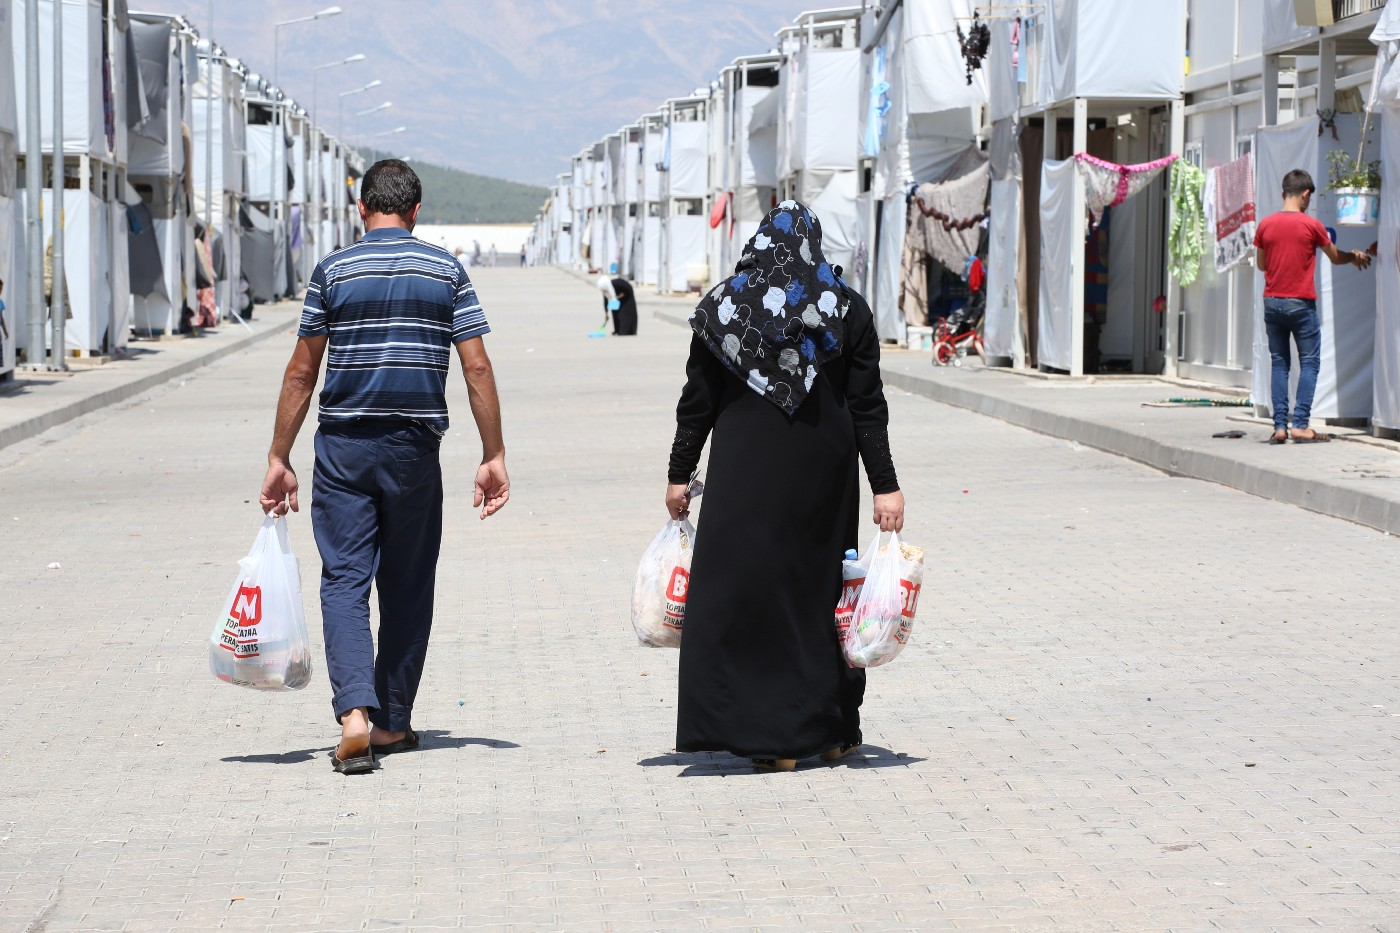 E-food card brings normalcy to Syrian refugees in camps in Turkey